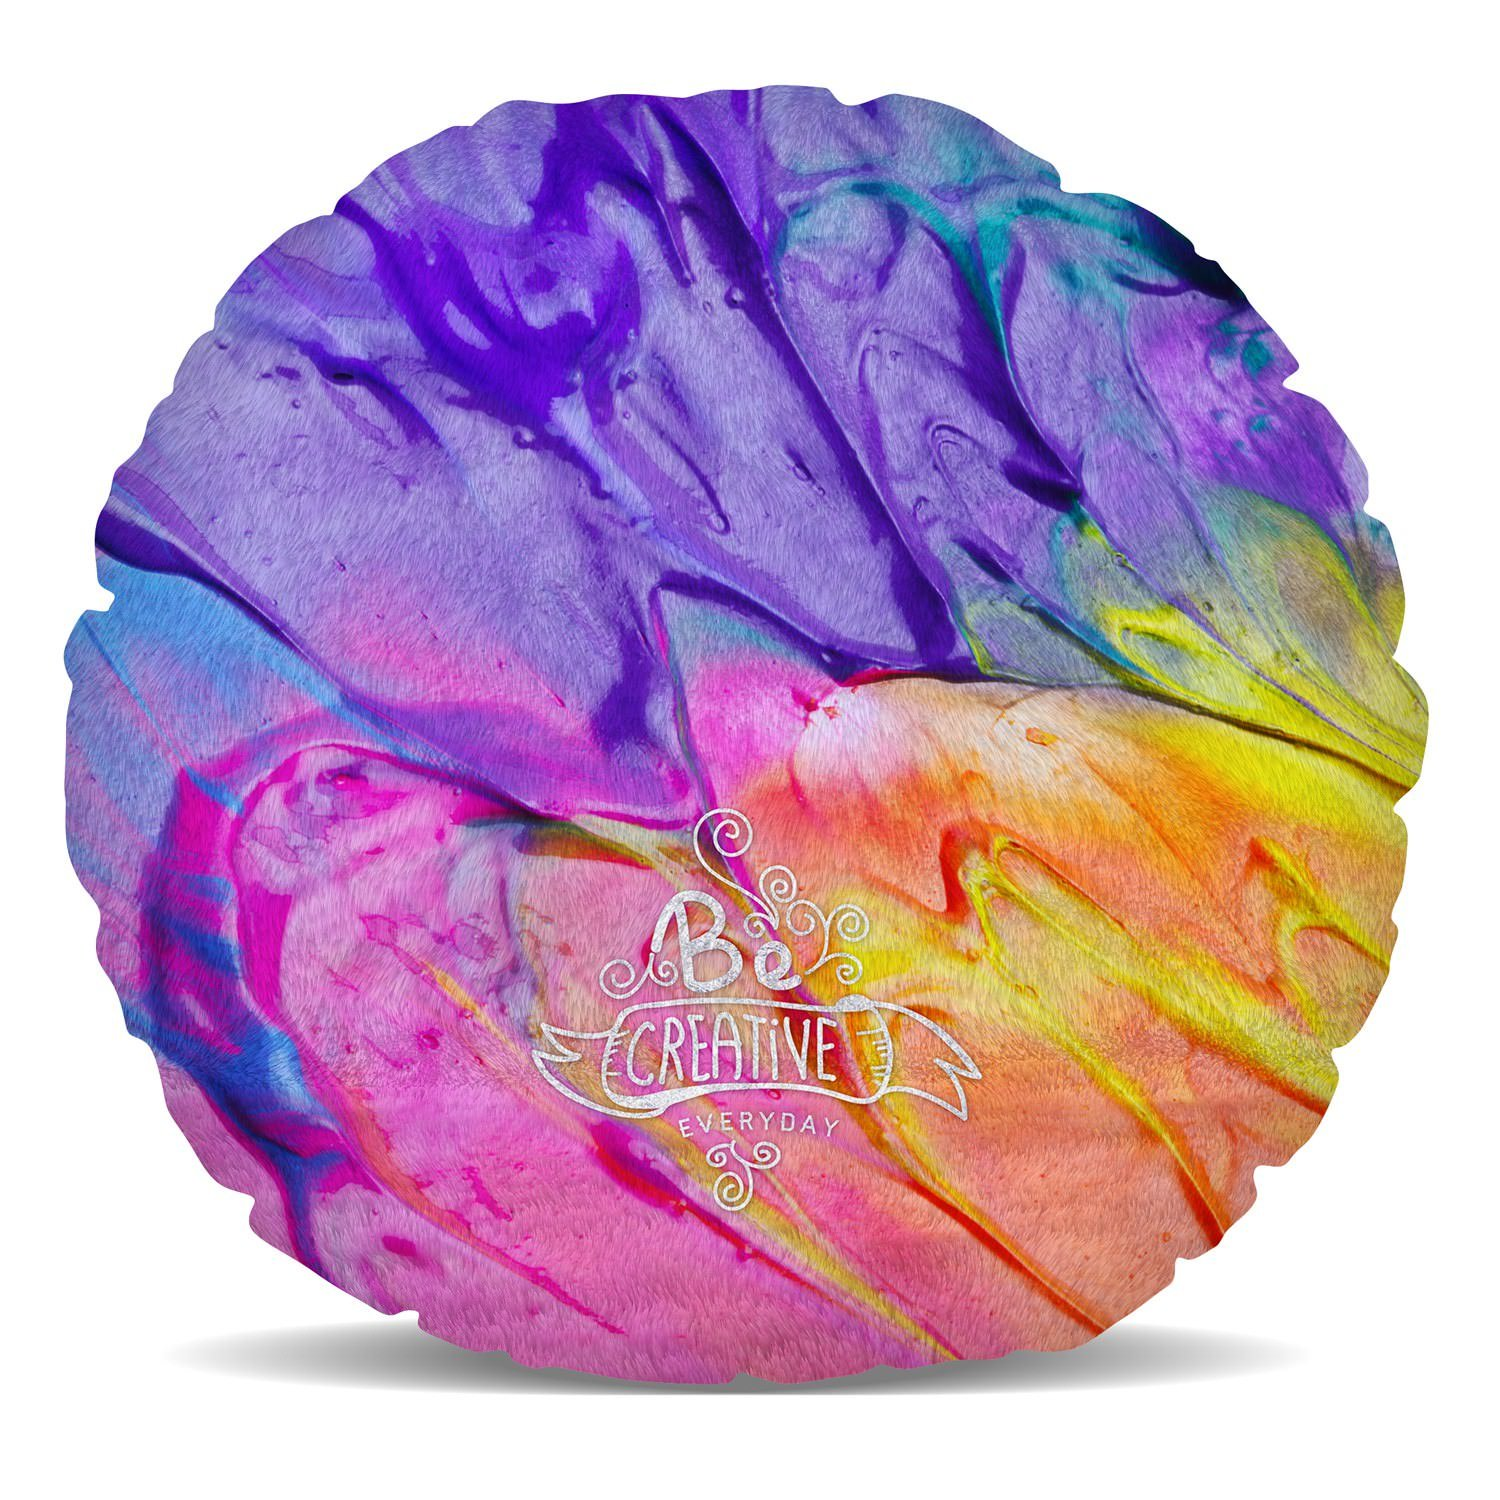 Queen of Cases Be Creative Every Day Fleece Cushion - Heart Cushion - 16in by Queen of Cases (Image #3)